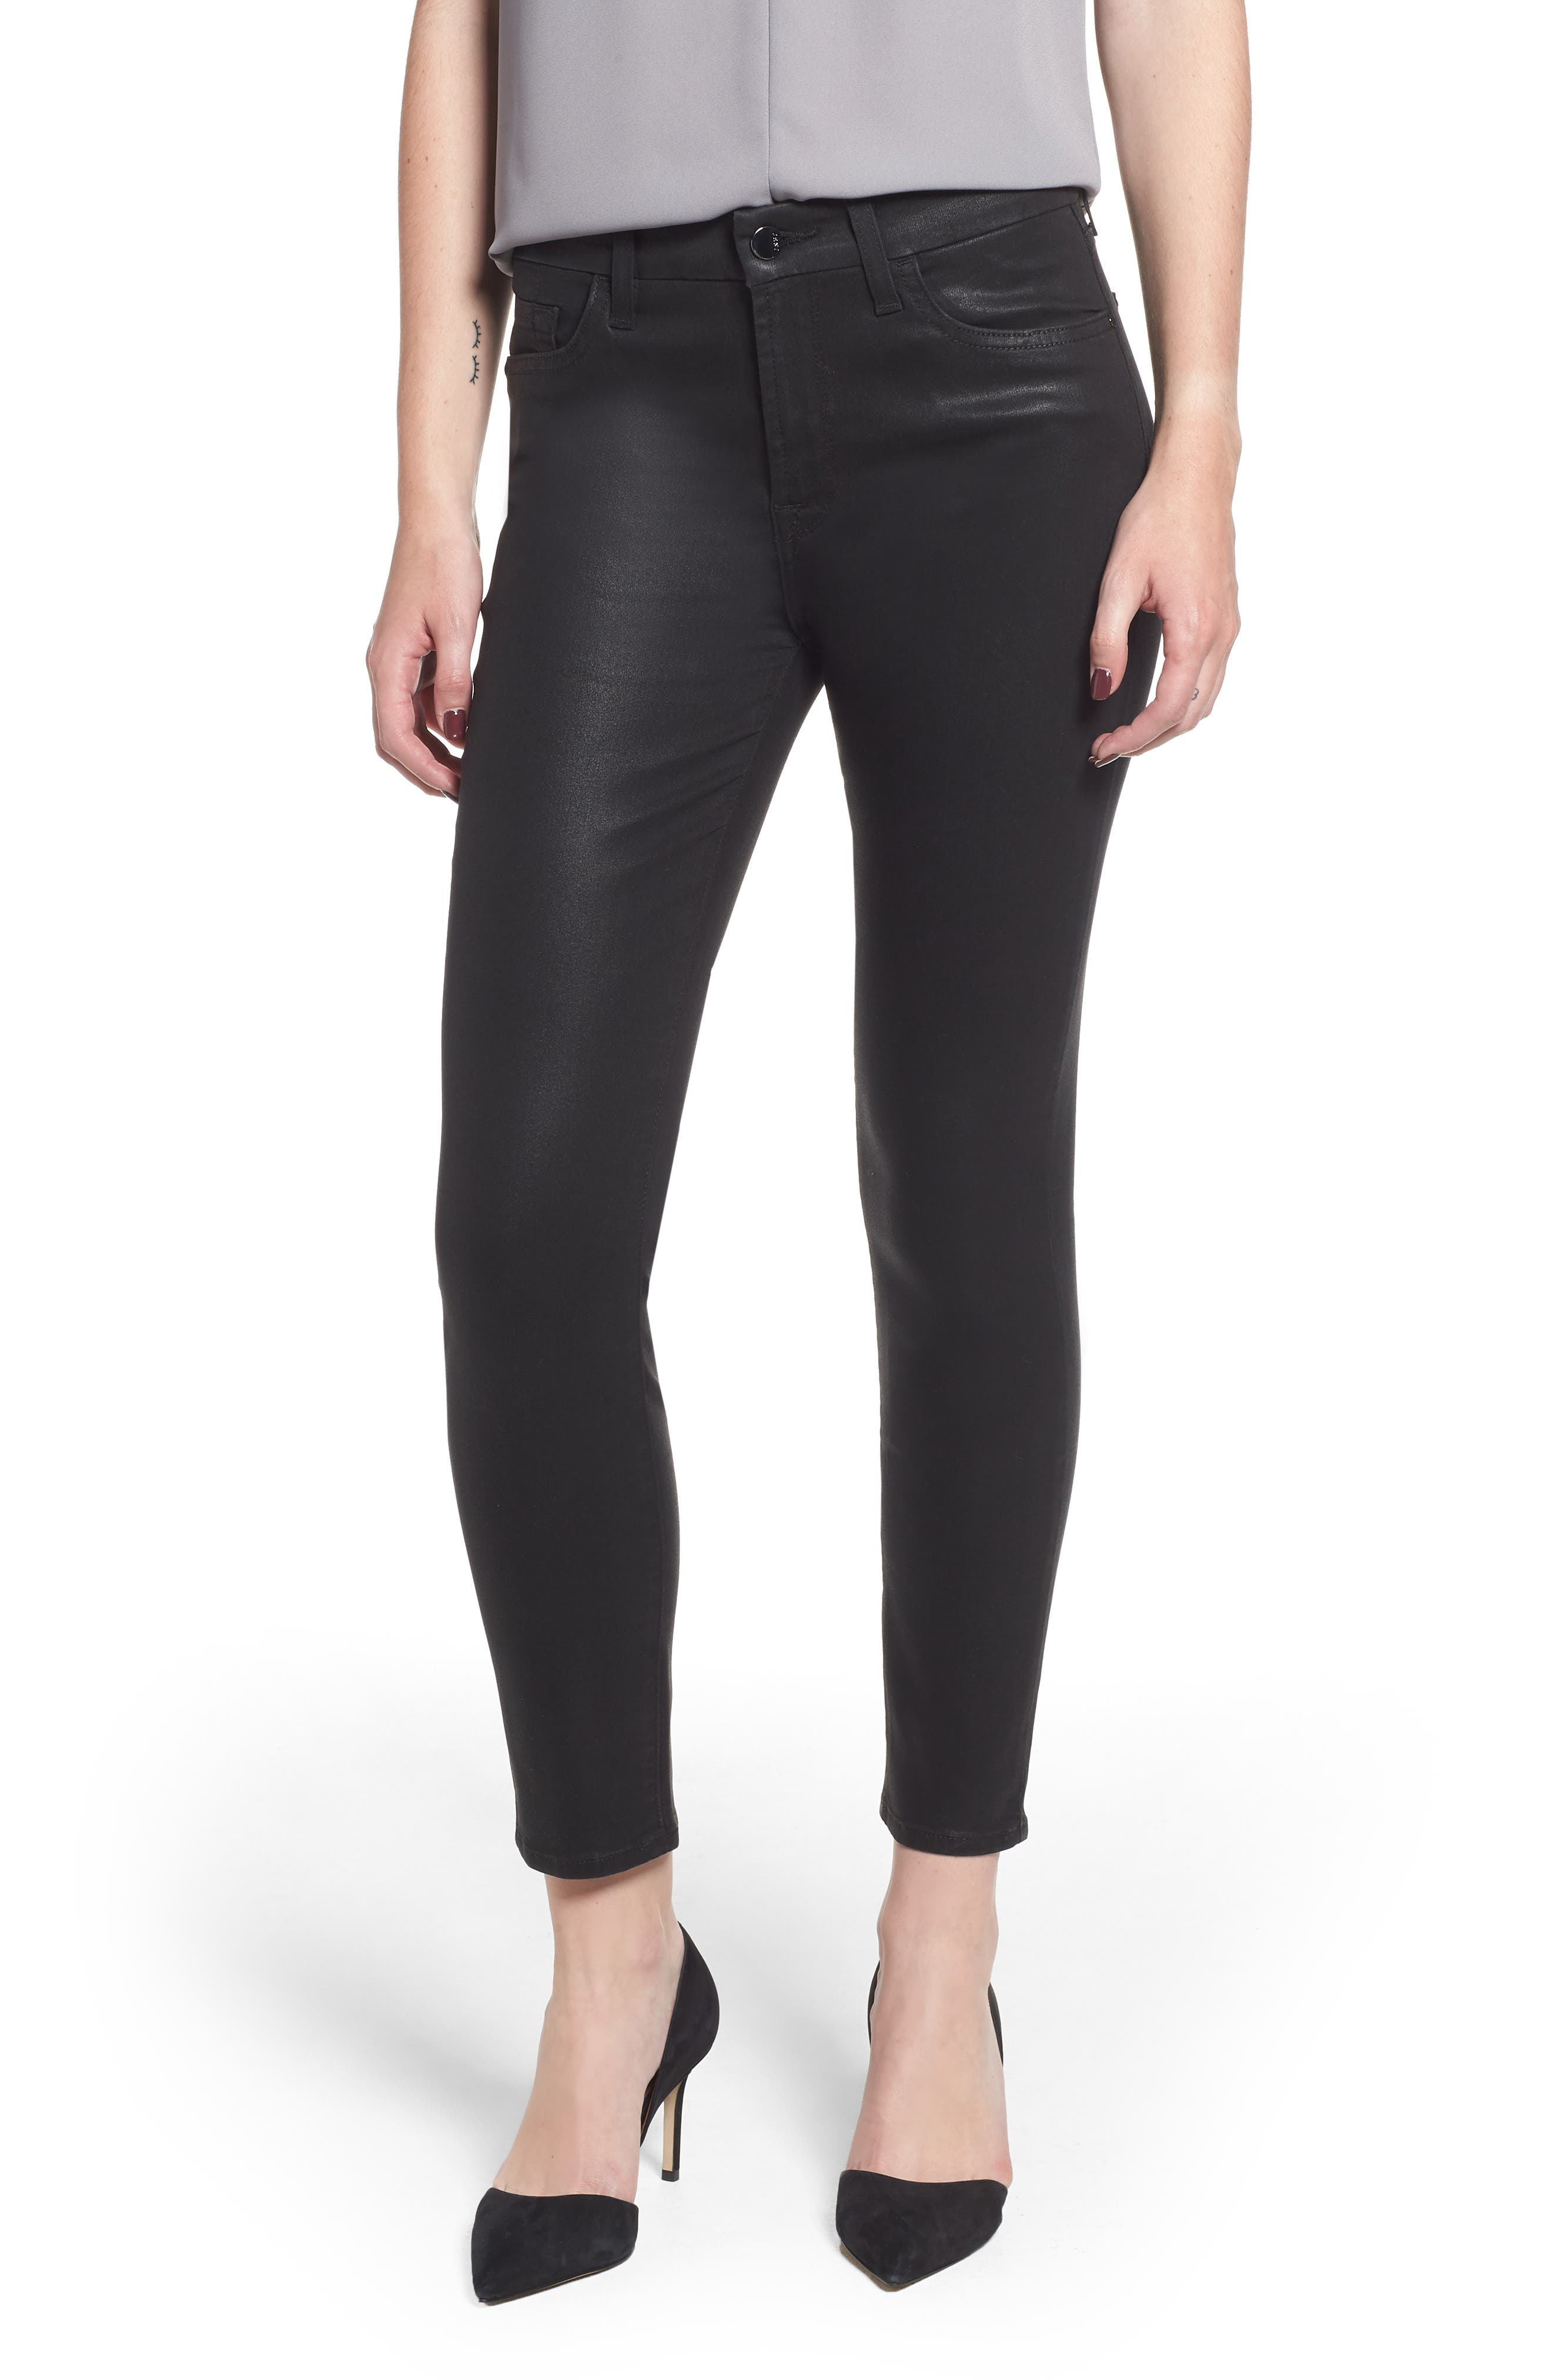 JEN7 Riche Touch Coated Ankle Skinny Jeans in Riche Touch Black Crystals